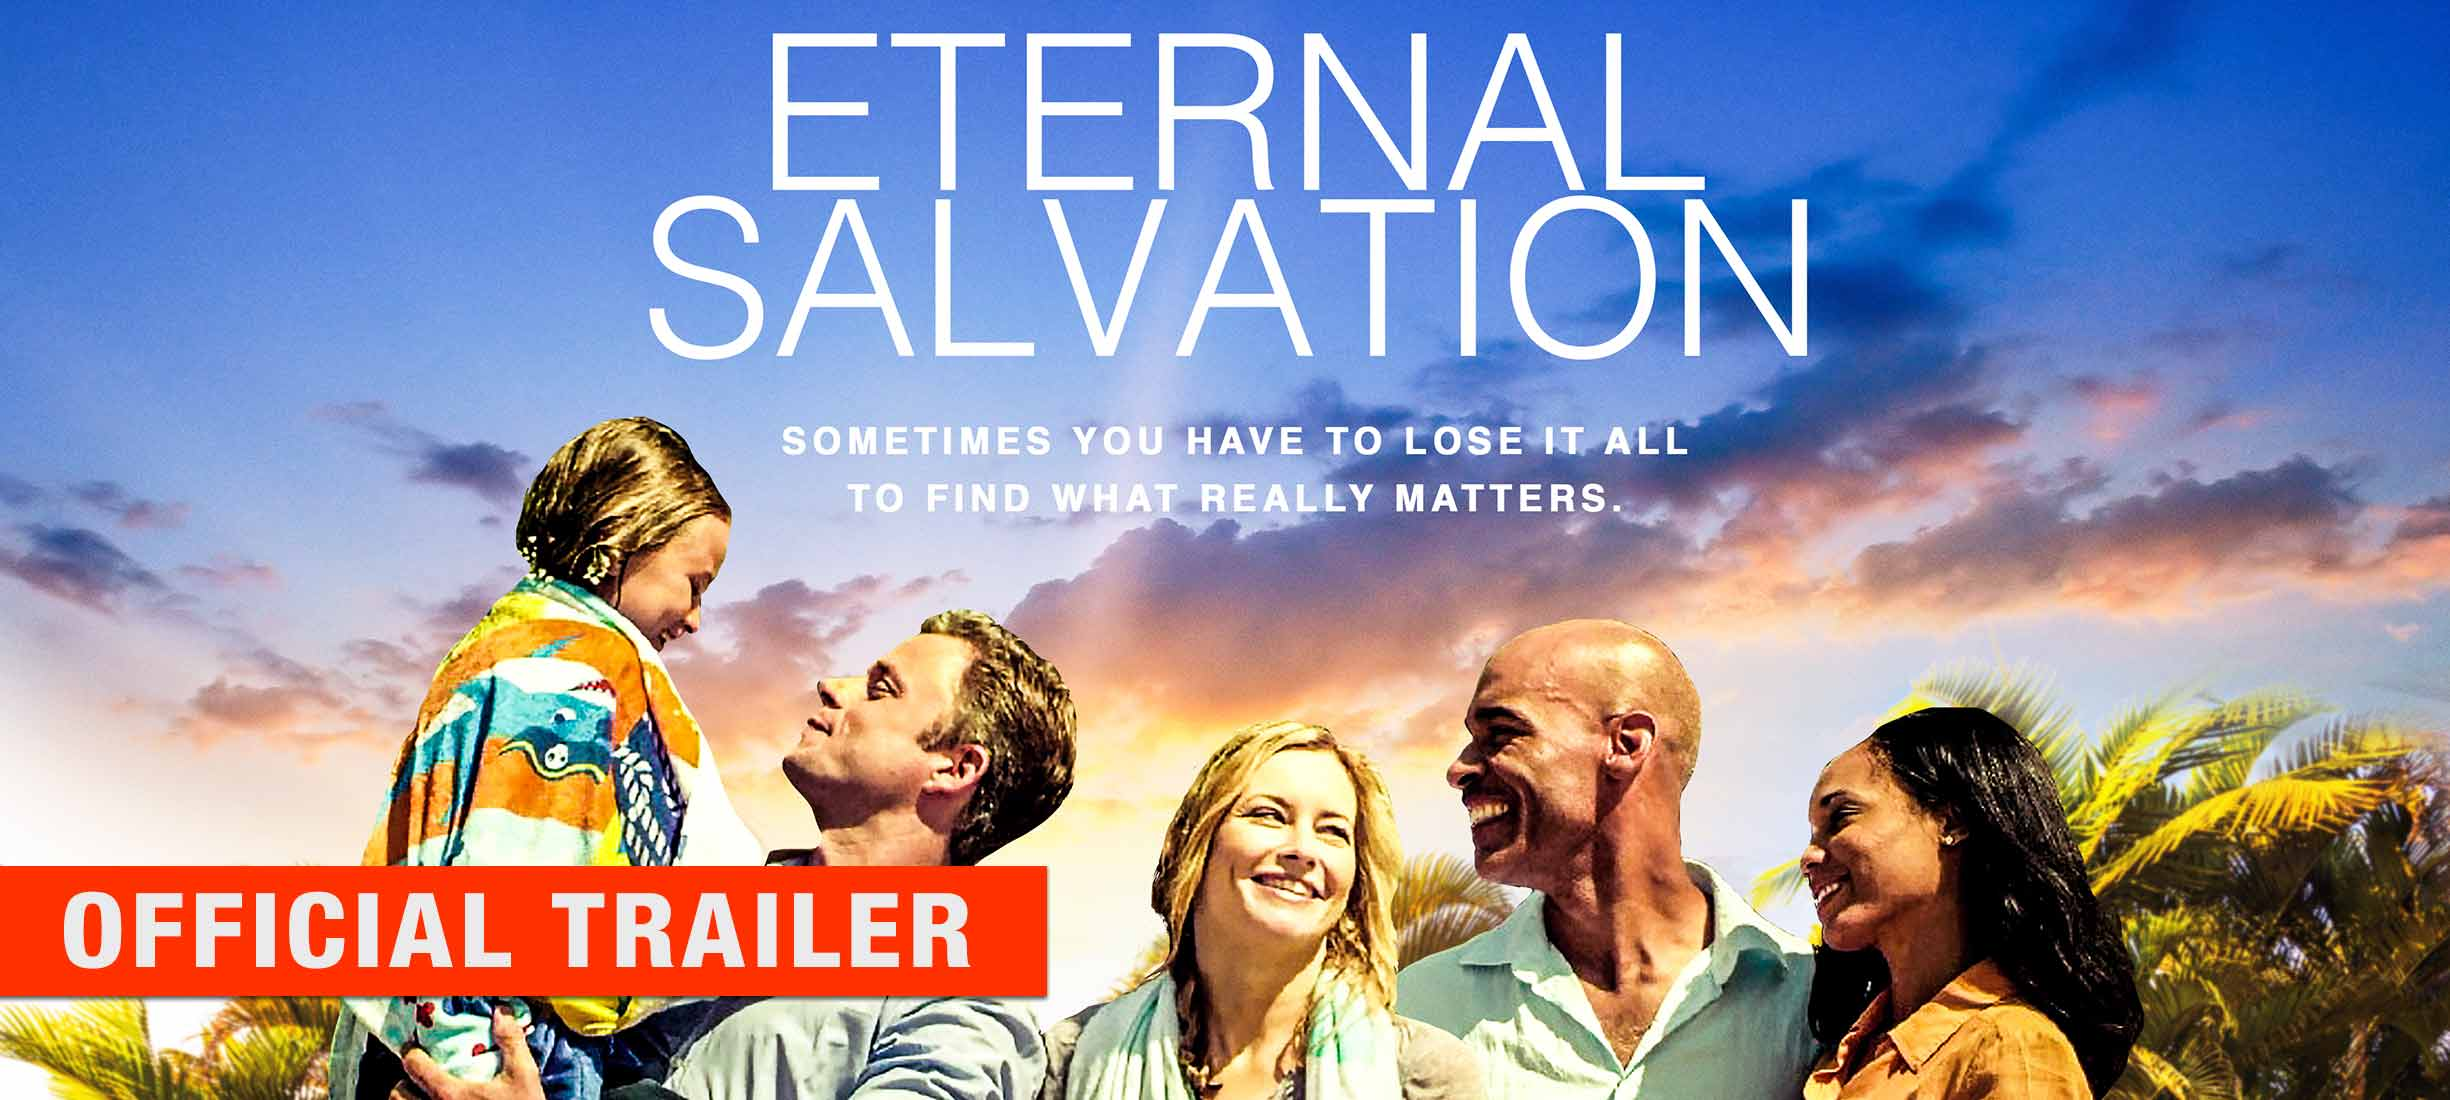 Eternal Salvation: Trailer